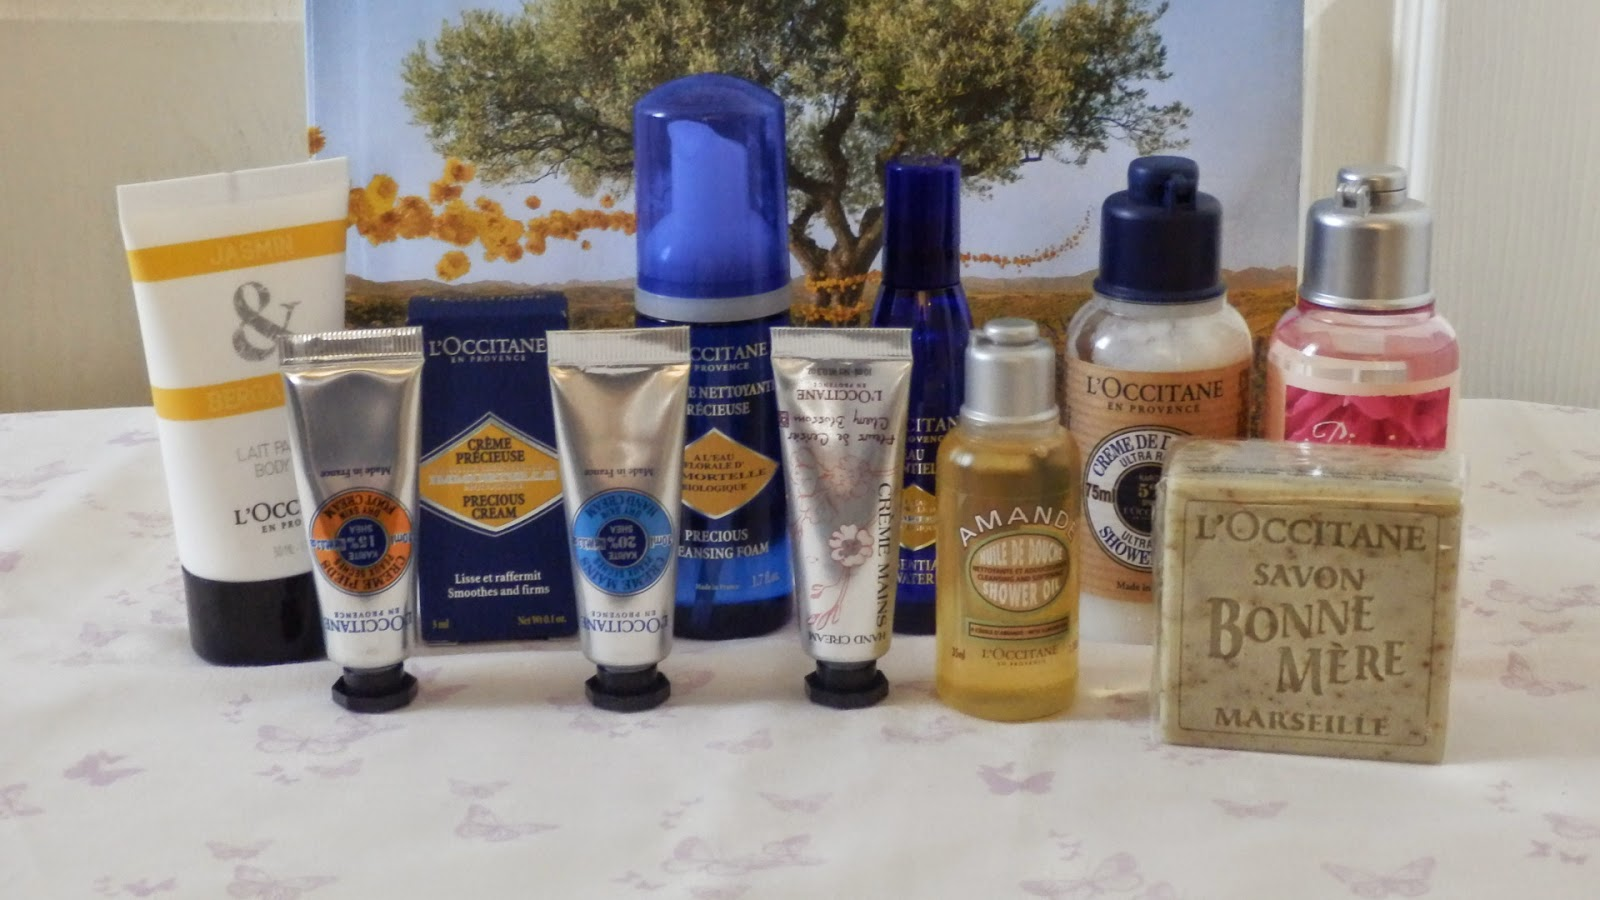 L'Occitane Instyle Shopping Event Haul Goodie Bag